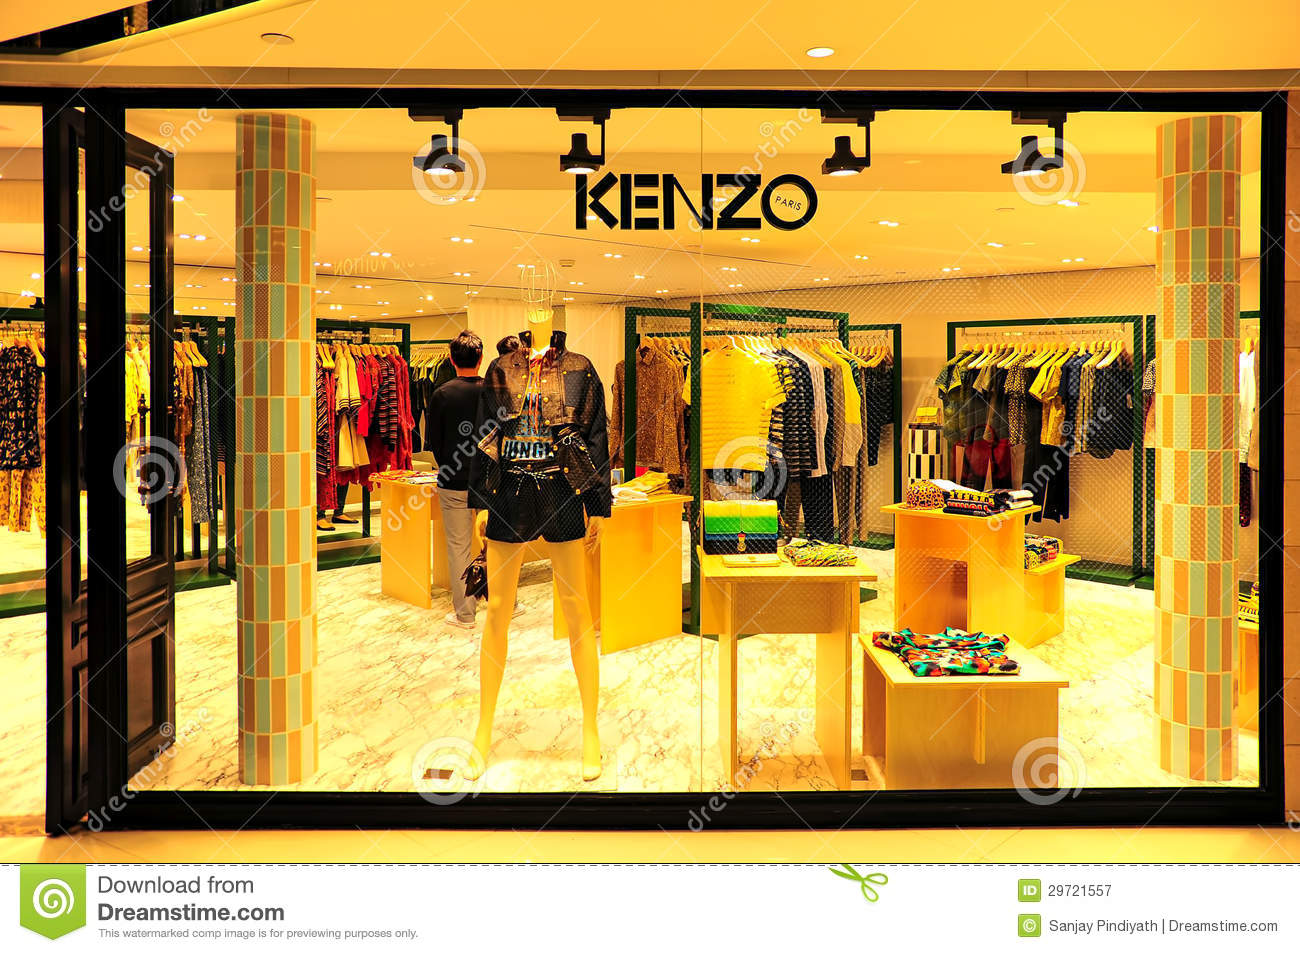 Clothes stores. Tokyo clothing stores